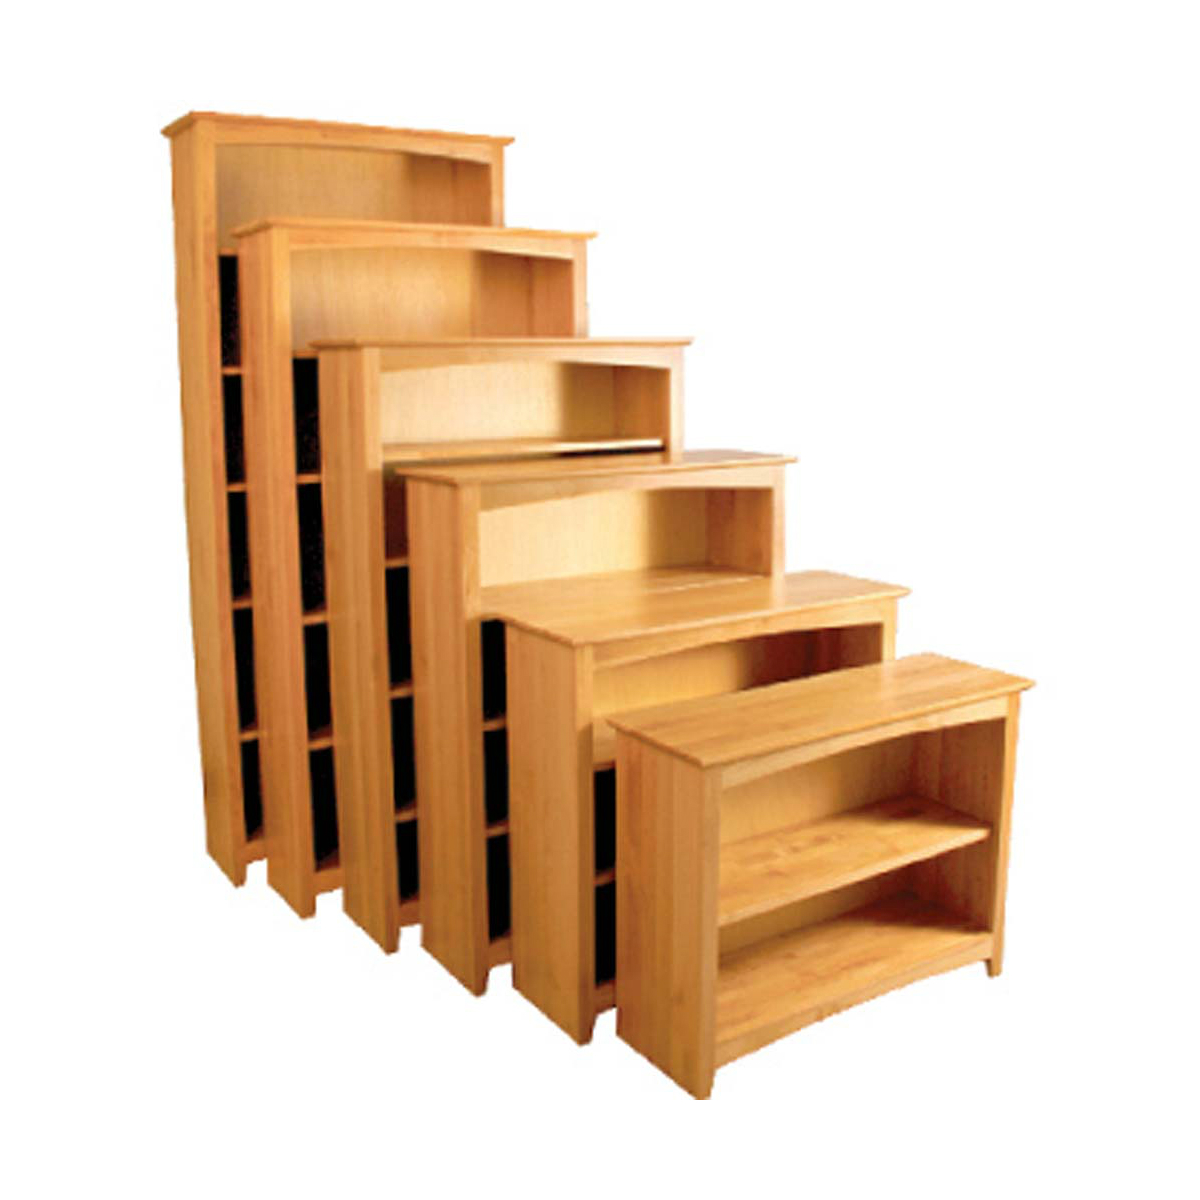 Archbold Shaker Bookcases    Starting at: $294.99